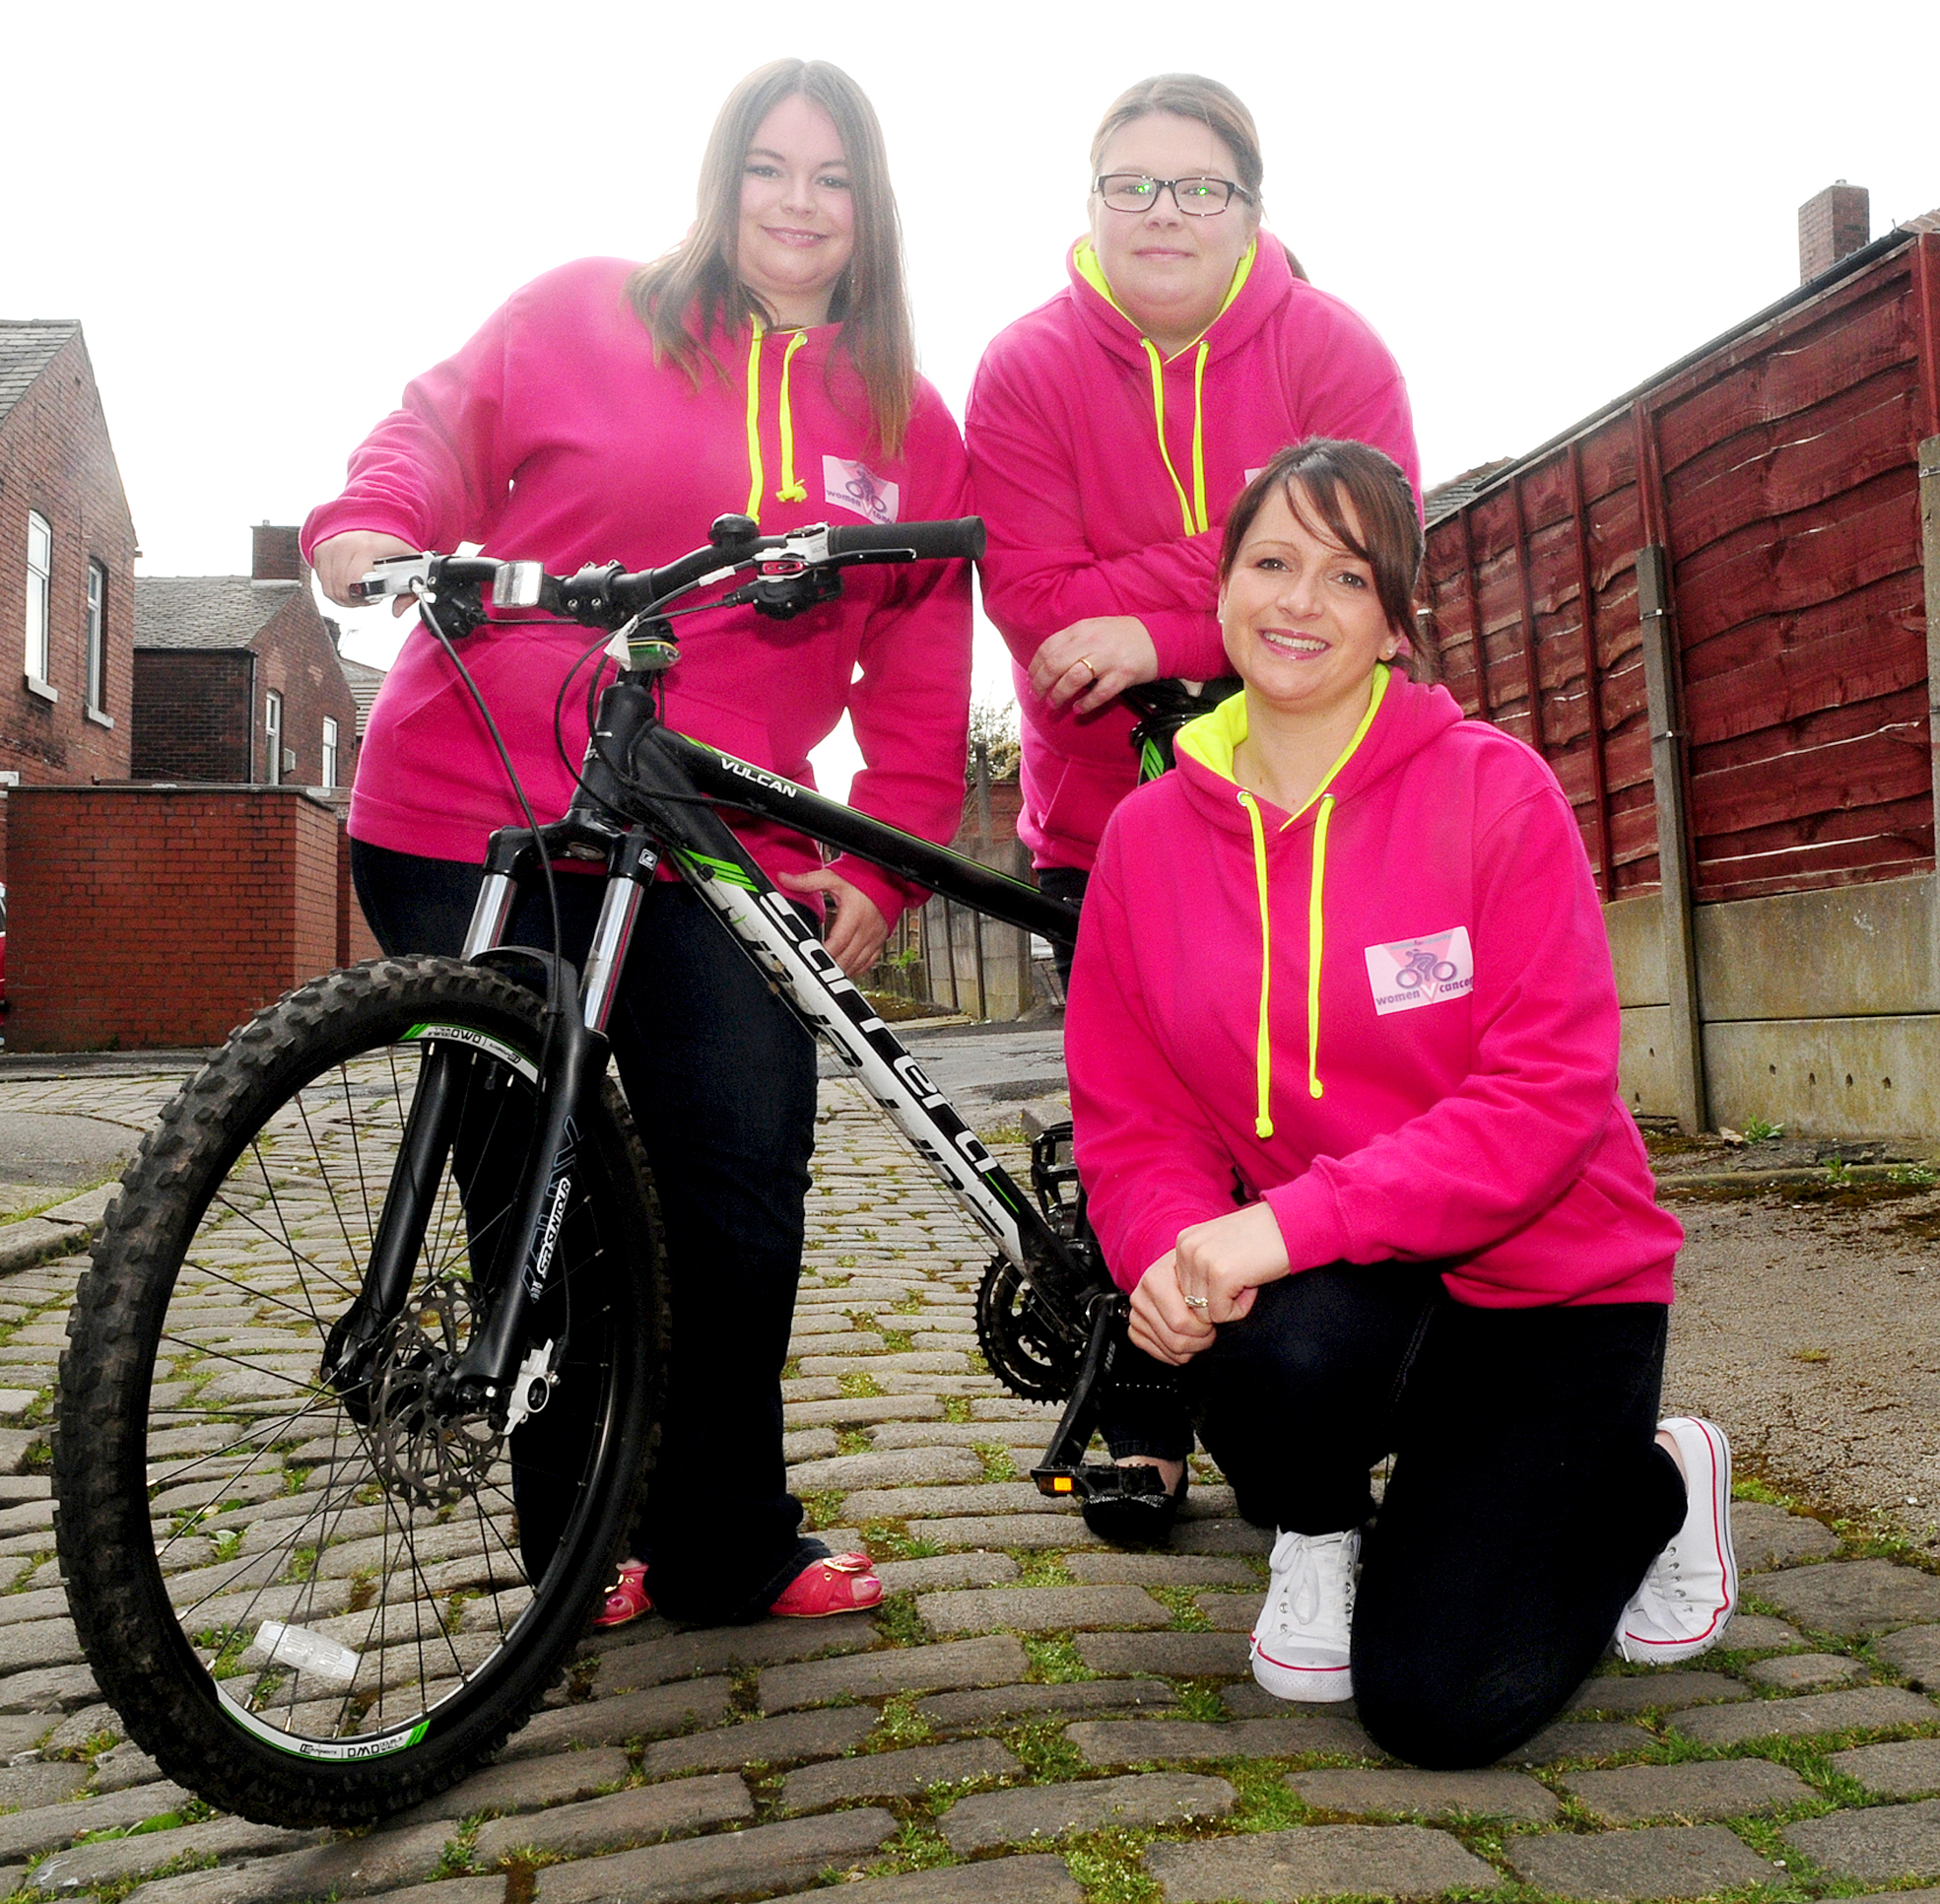 Michelle Leatham, Nicola Caffrey and Amy Russell